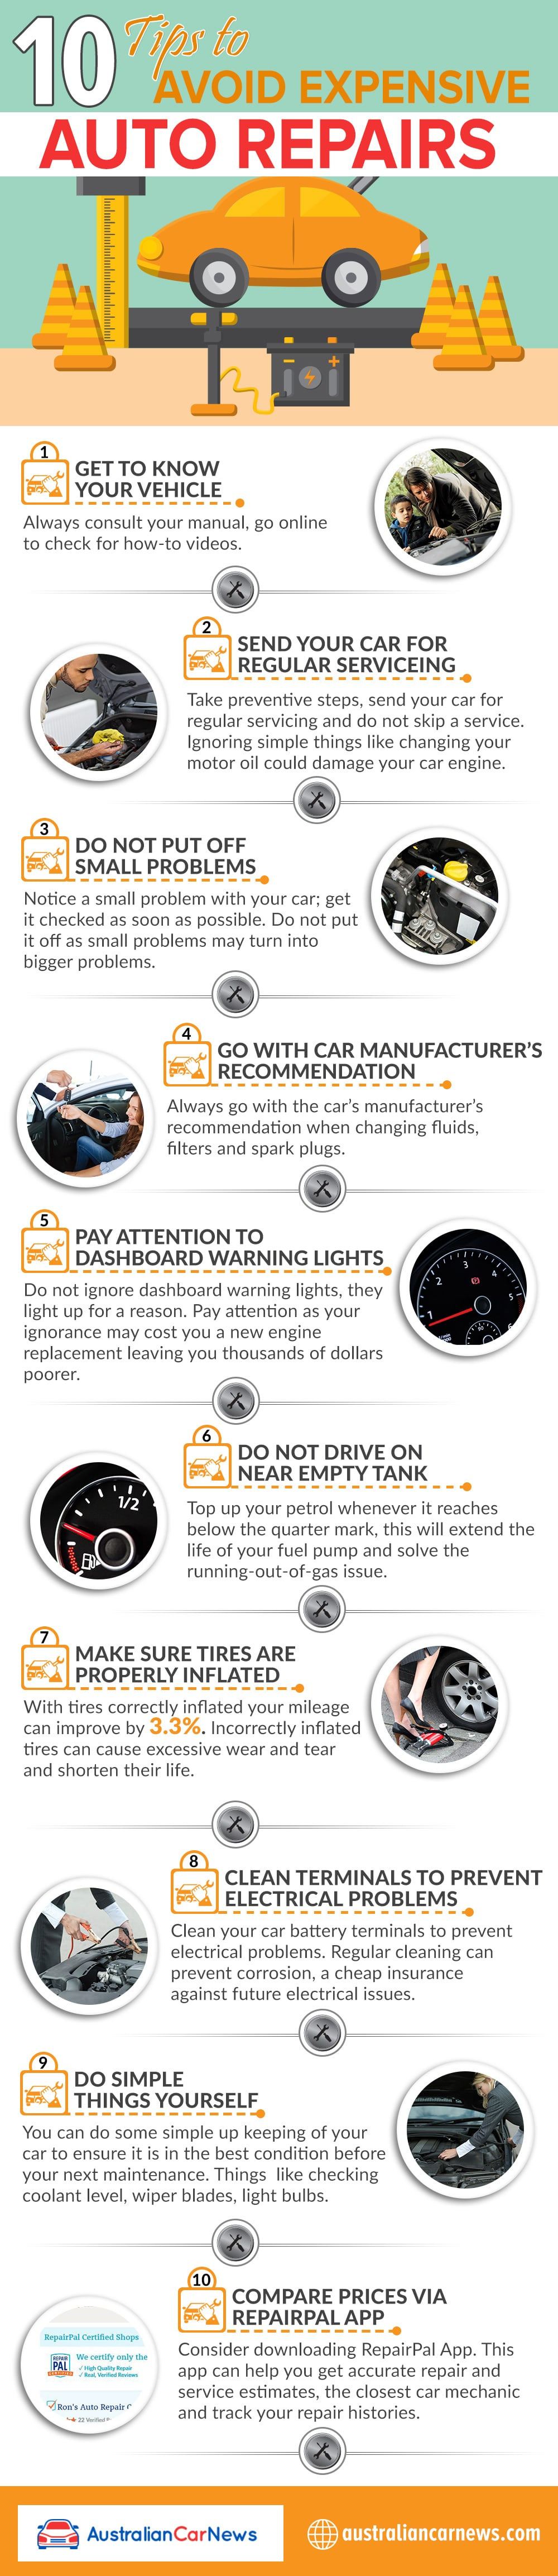 How To Reduce Vehicle Repair Costs